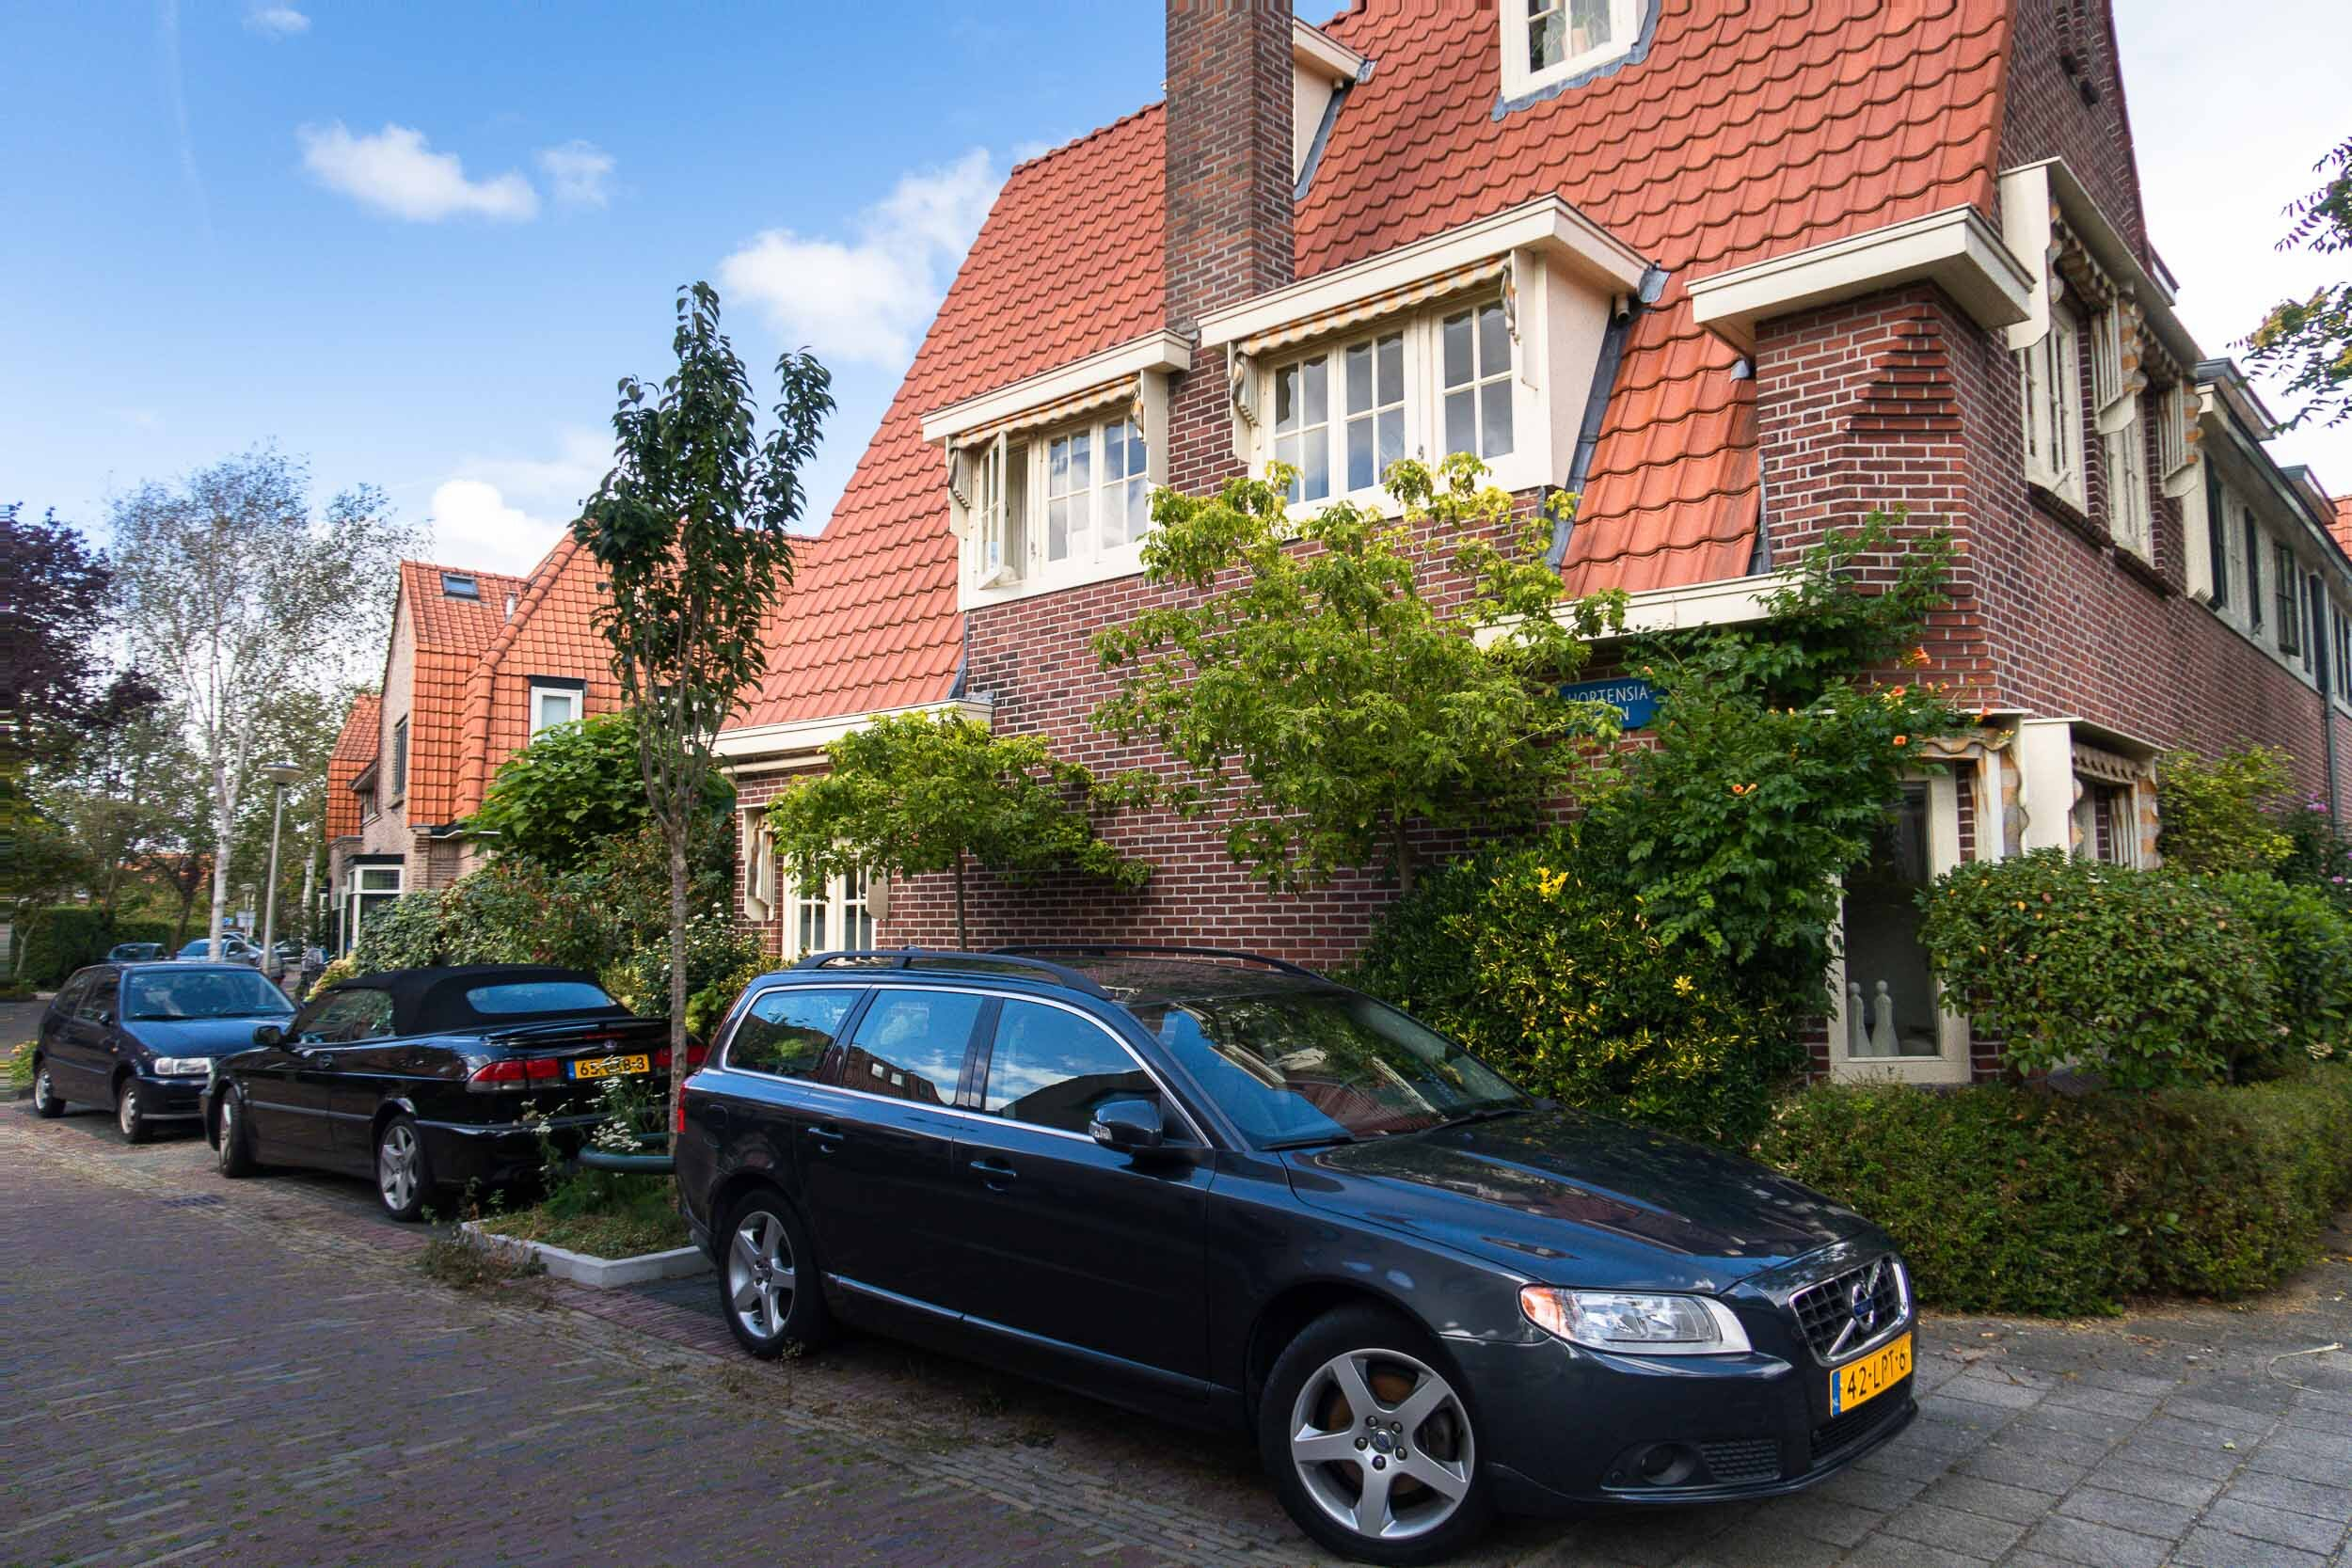 Travel tips and tricks for Haarlem, Netherlands and surrounding areas.